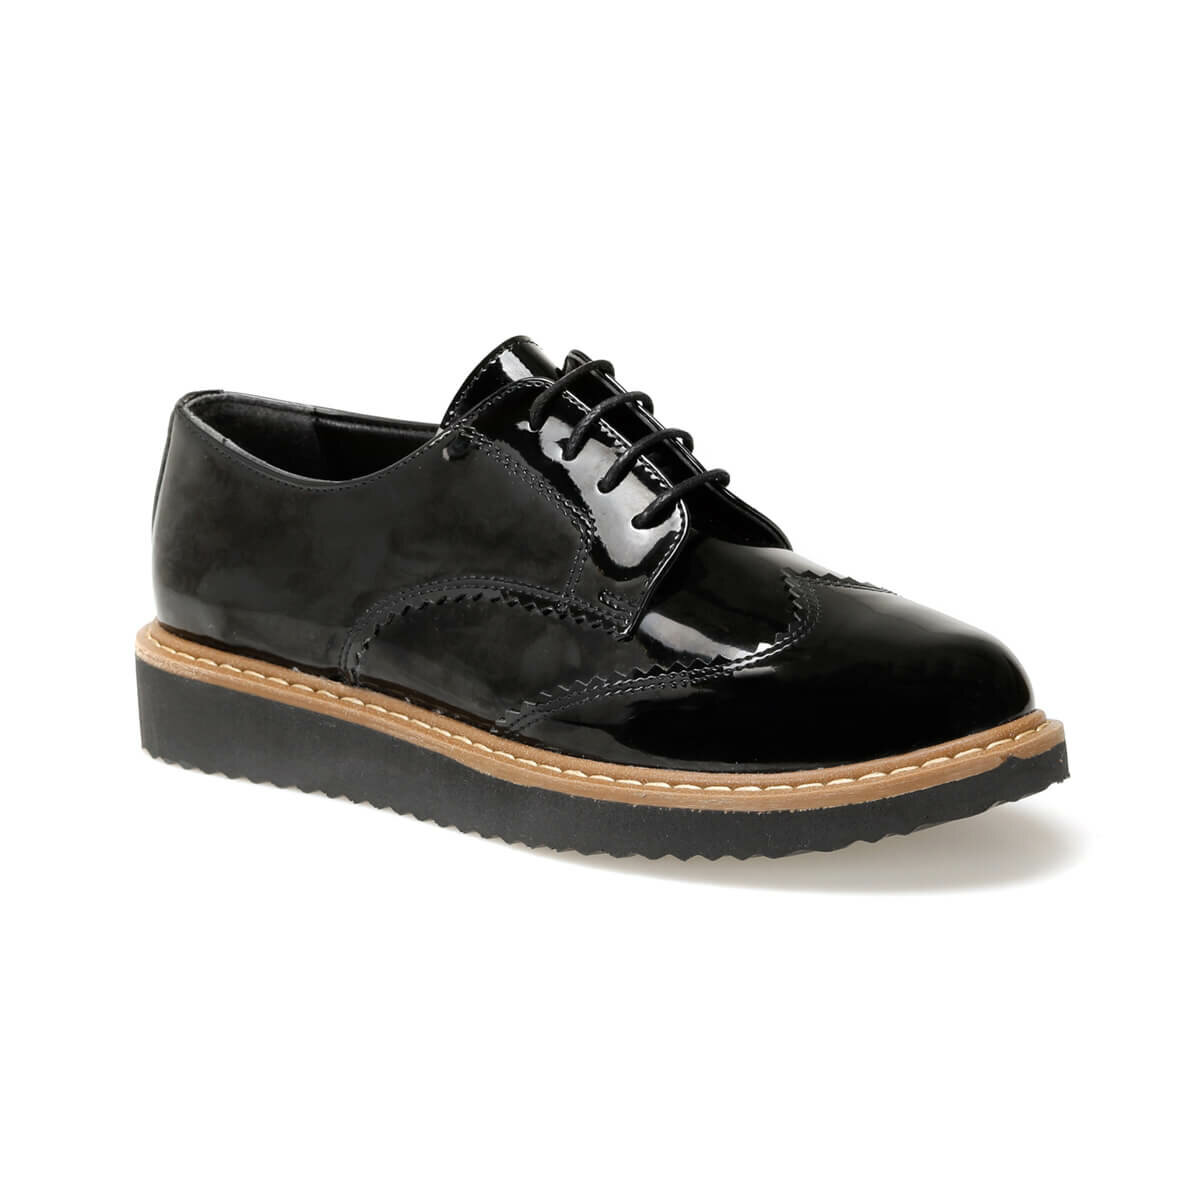 FLO DW19085 Black Women Oxford Shoes Miss F